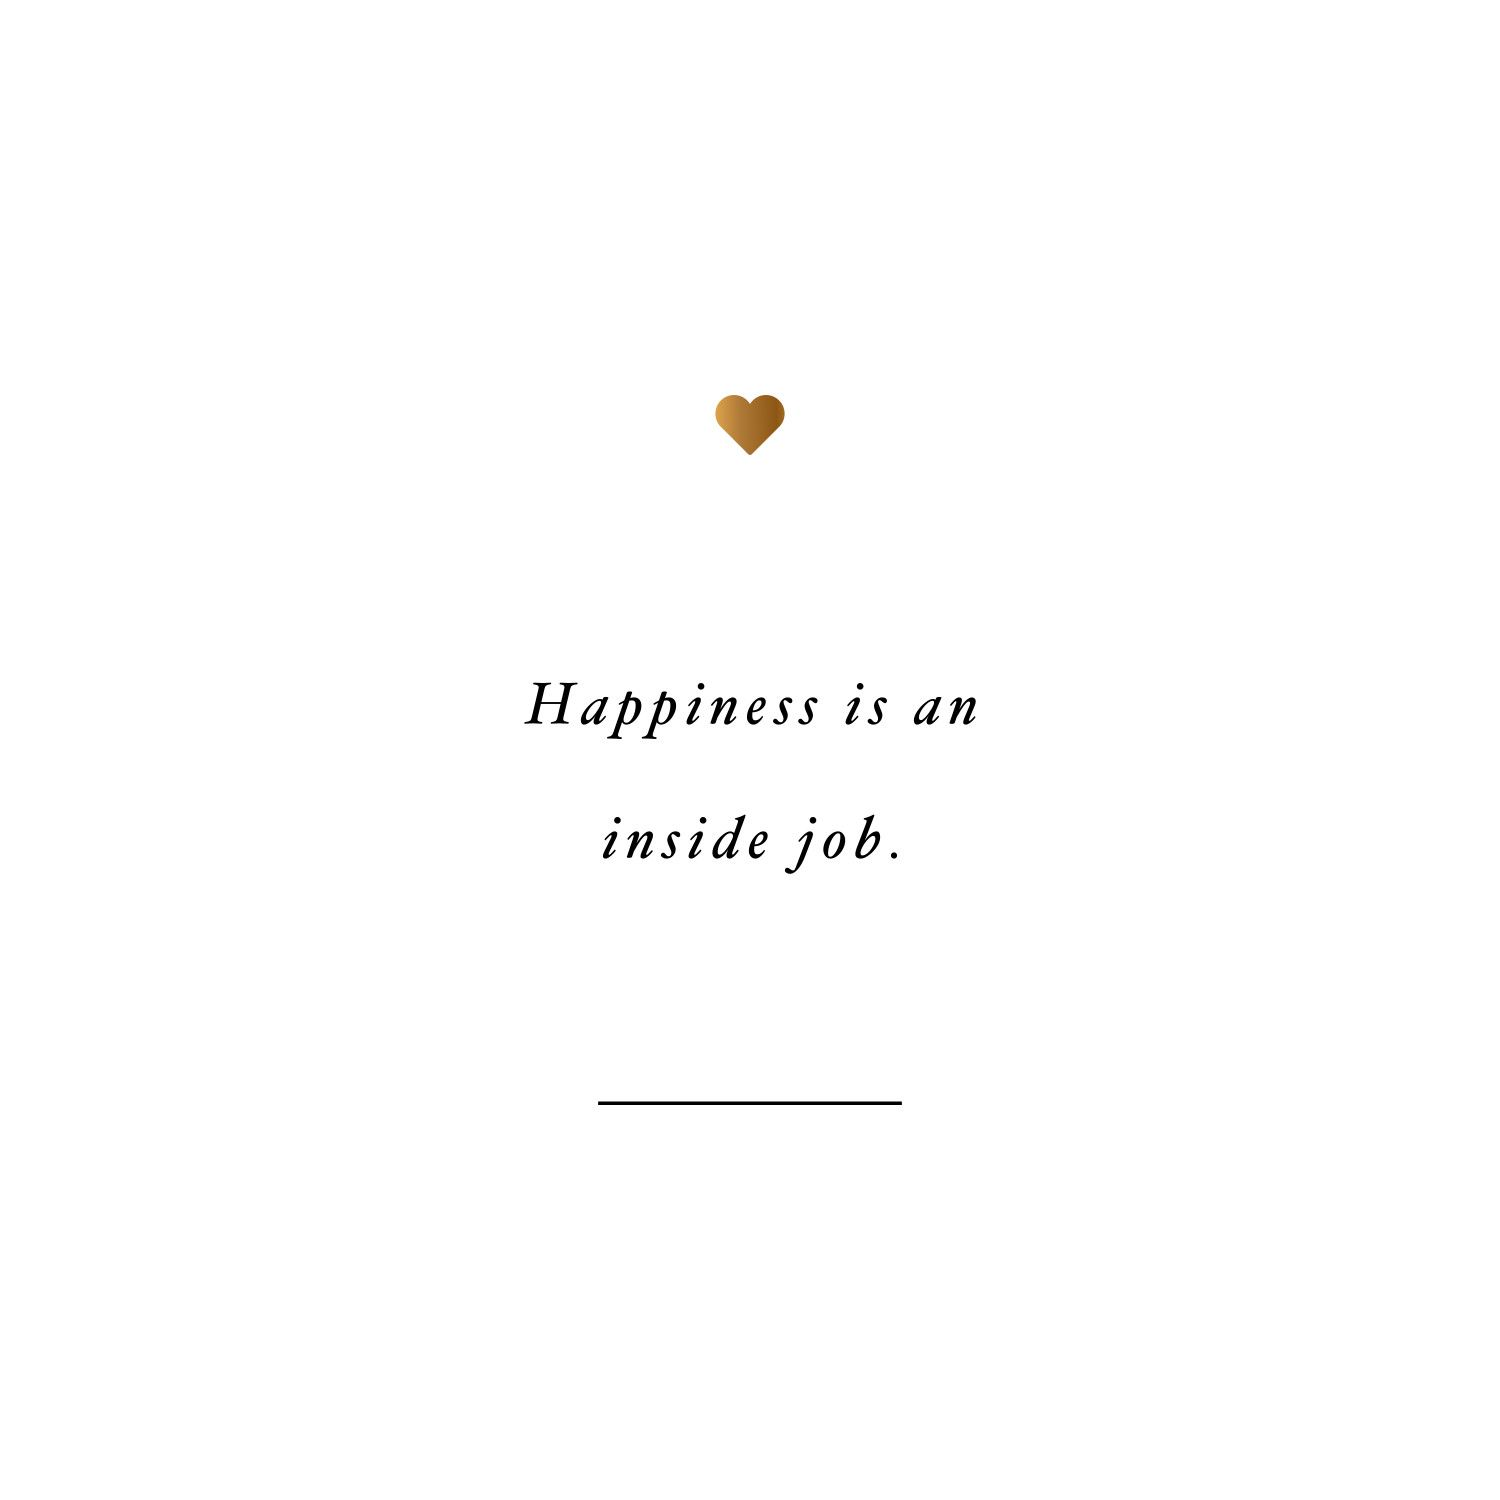 Happiness is an inside job! Browse our collection of inspirational exercise and fitness quotes and get instant weight loss and training motivation. Transform positive thoughts into positive actions and get fit, healthy and happy!